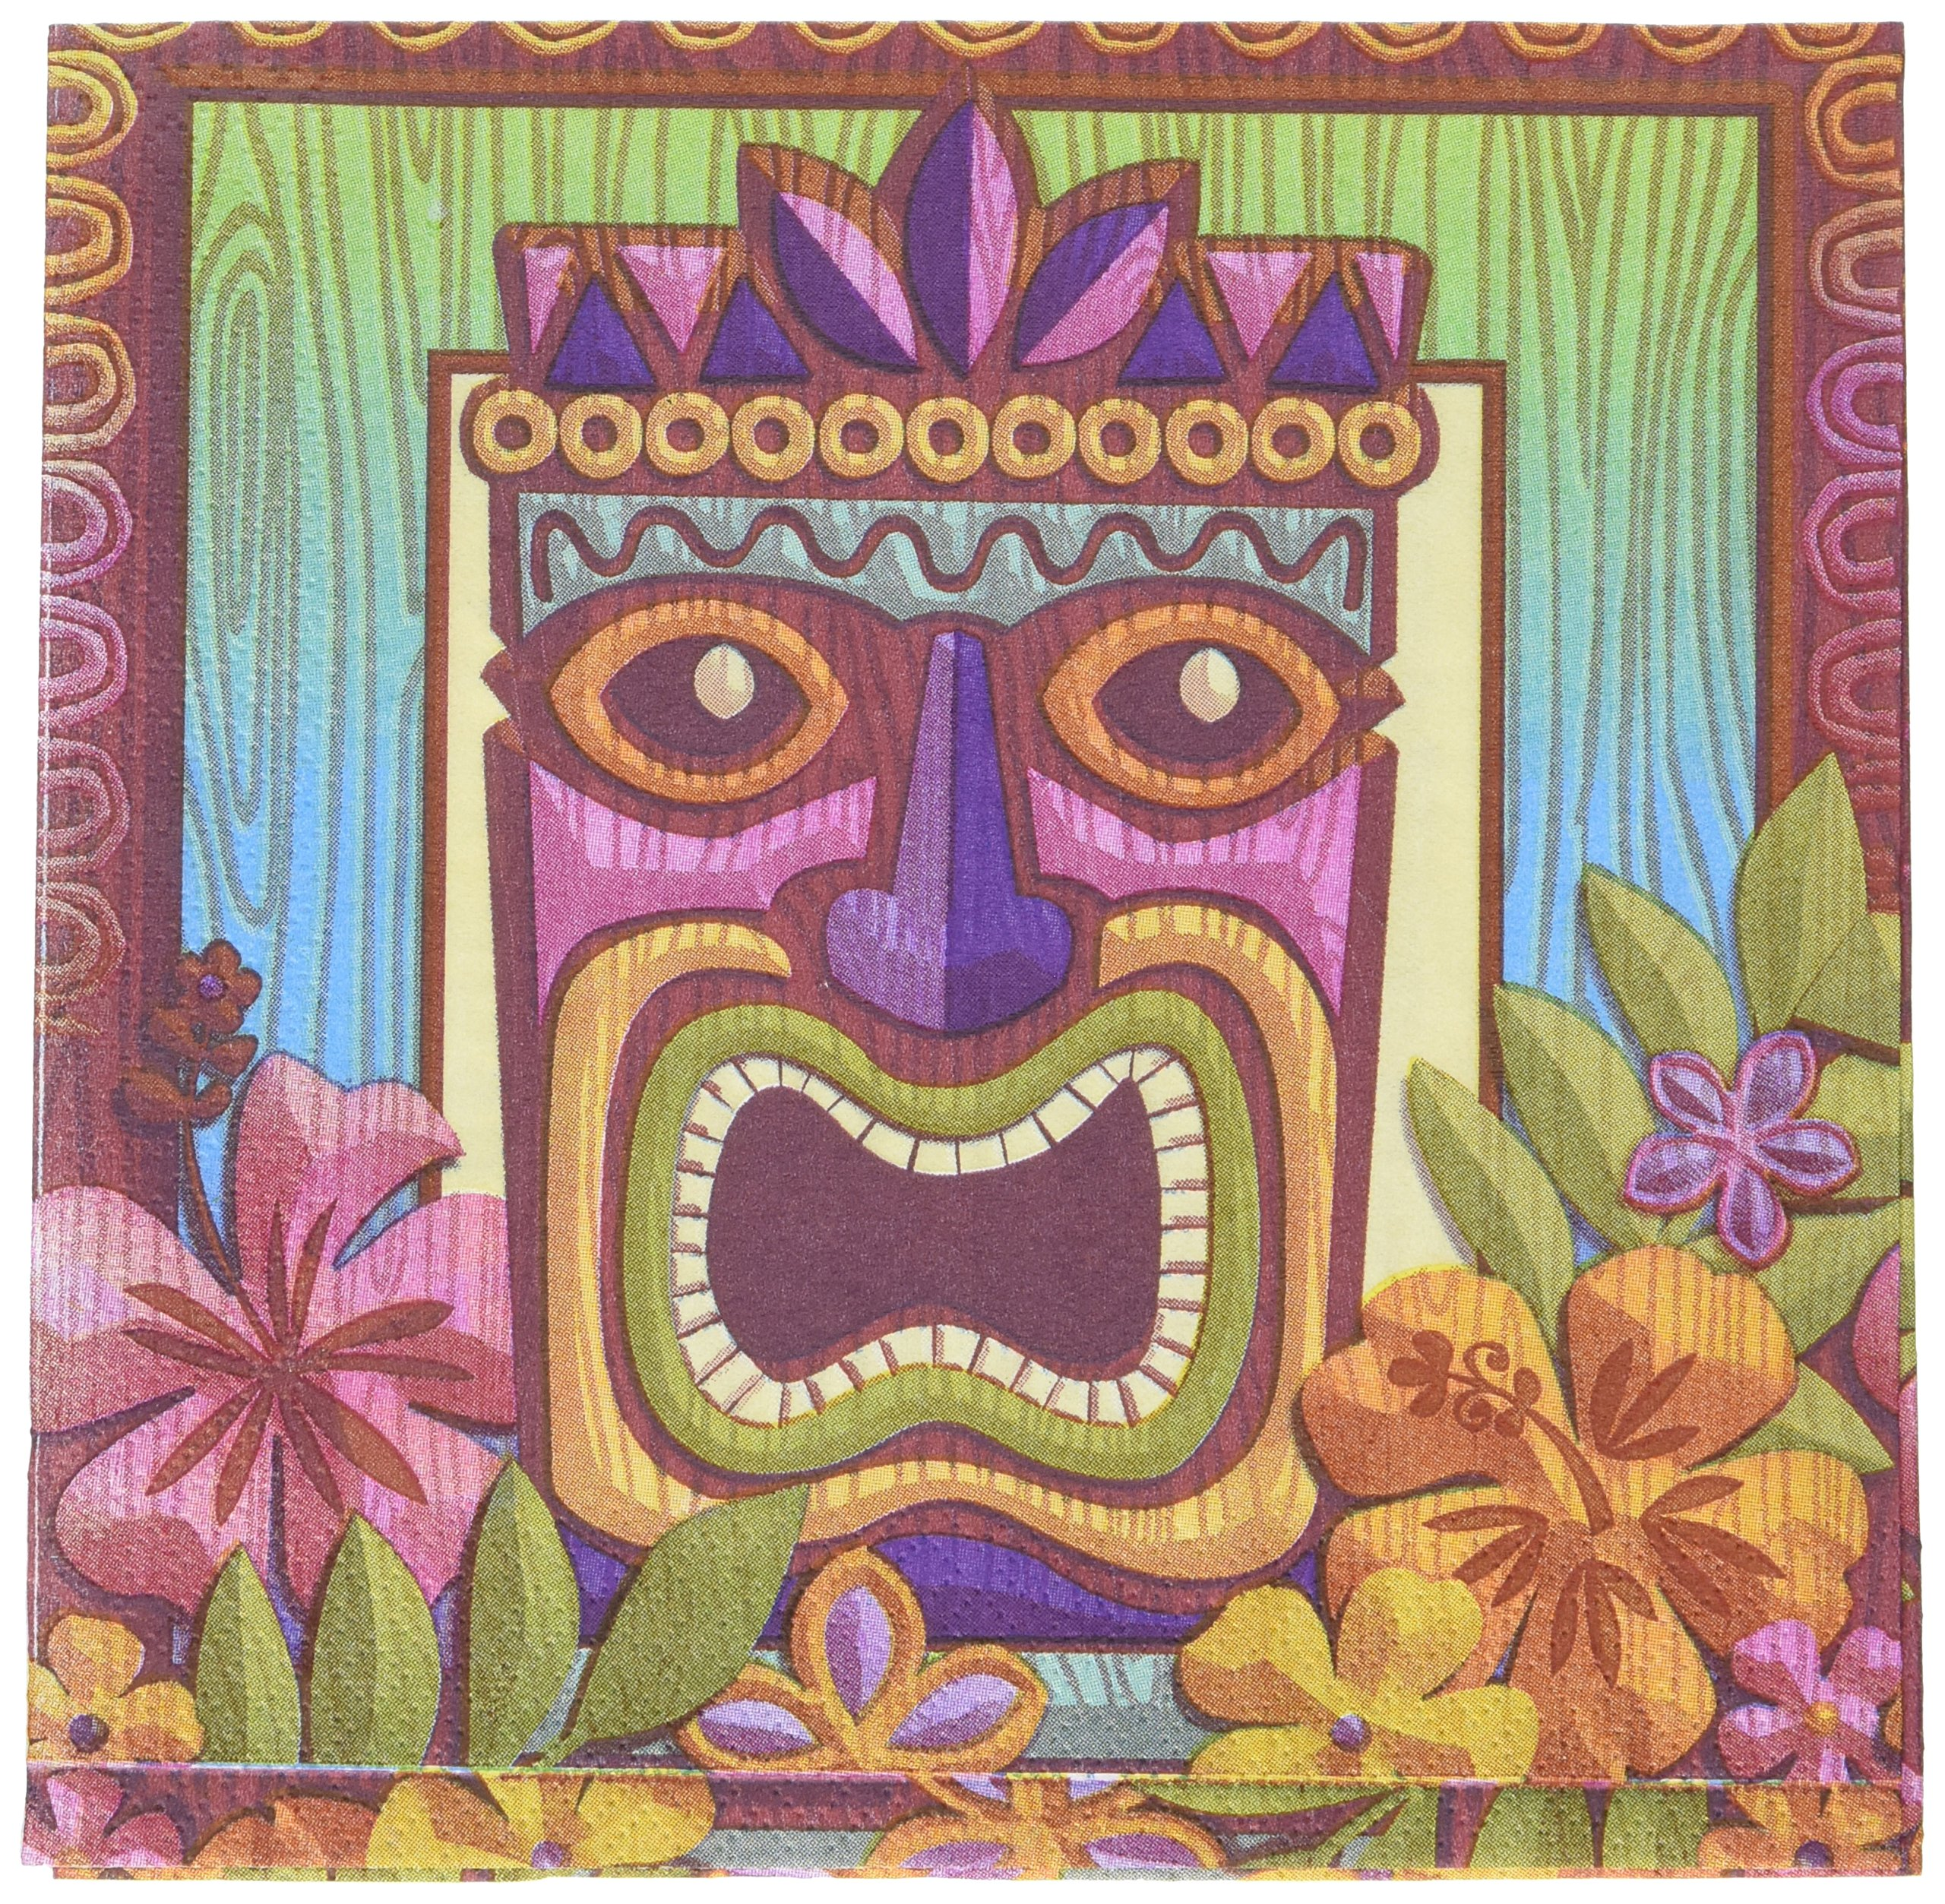 Amscan Sun-Sational Summer Luau Party Tropical Tiki Luncheon Napkins Tableware, 125 Pieces, Made from Paper